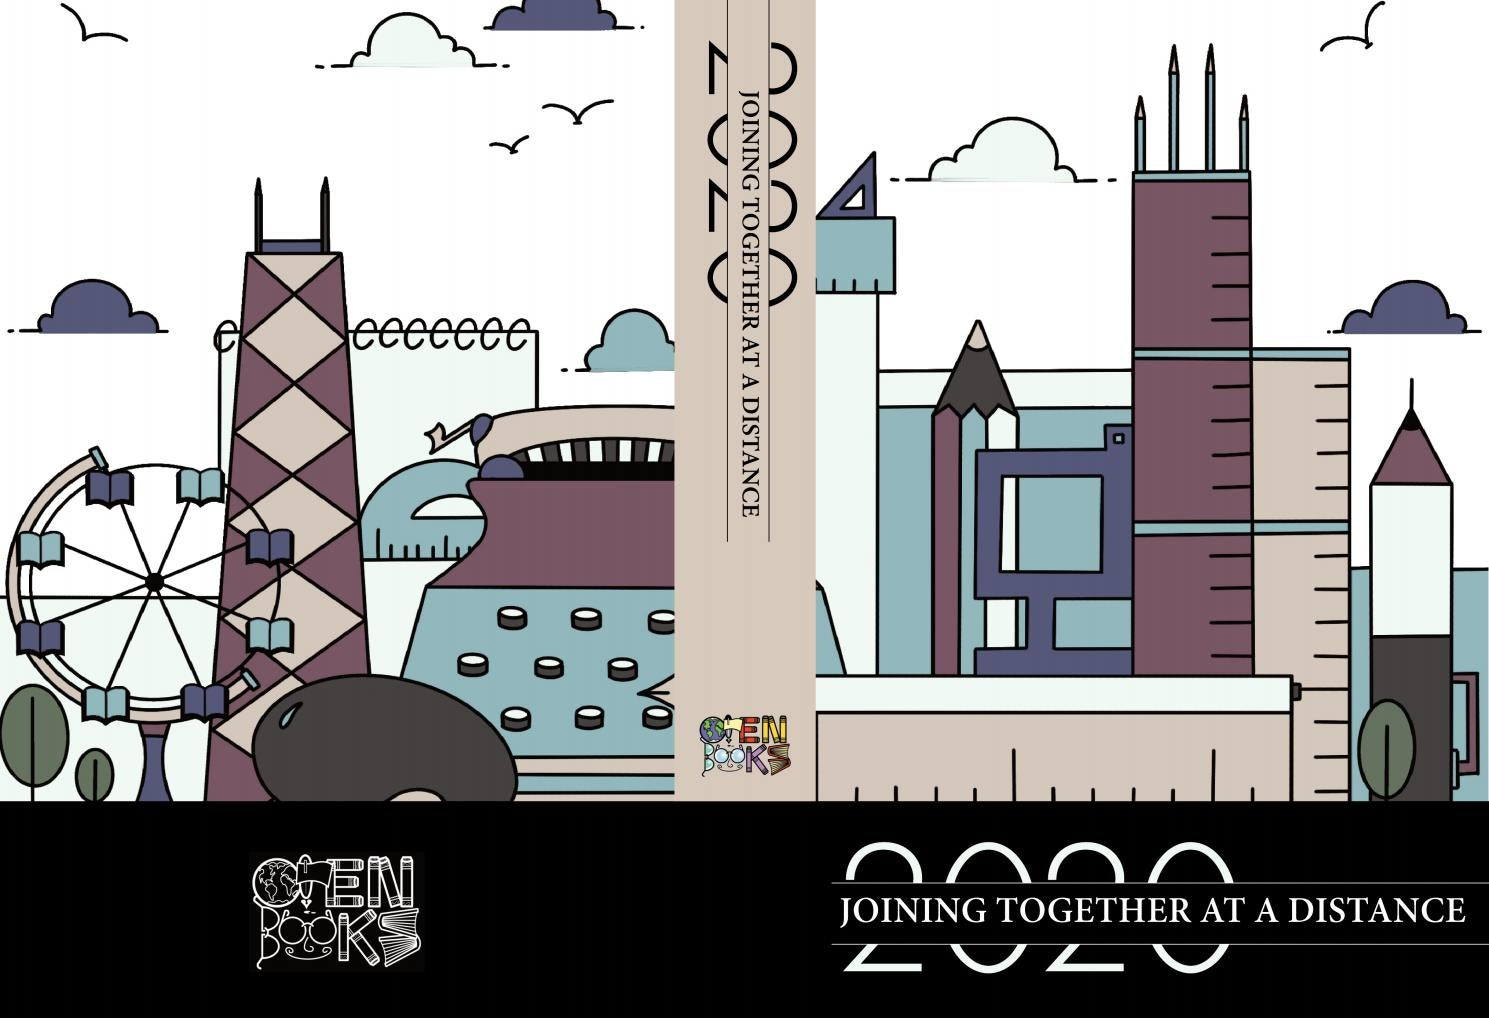 Joining Together At A Distance 2020 By Open Books Issuu